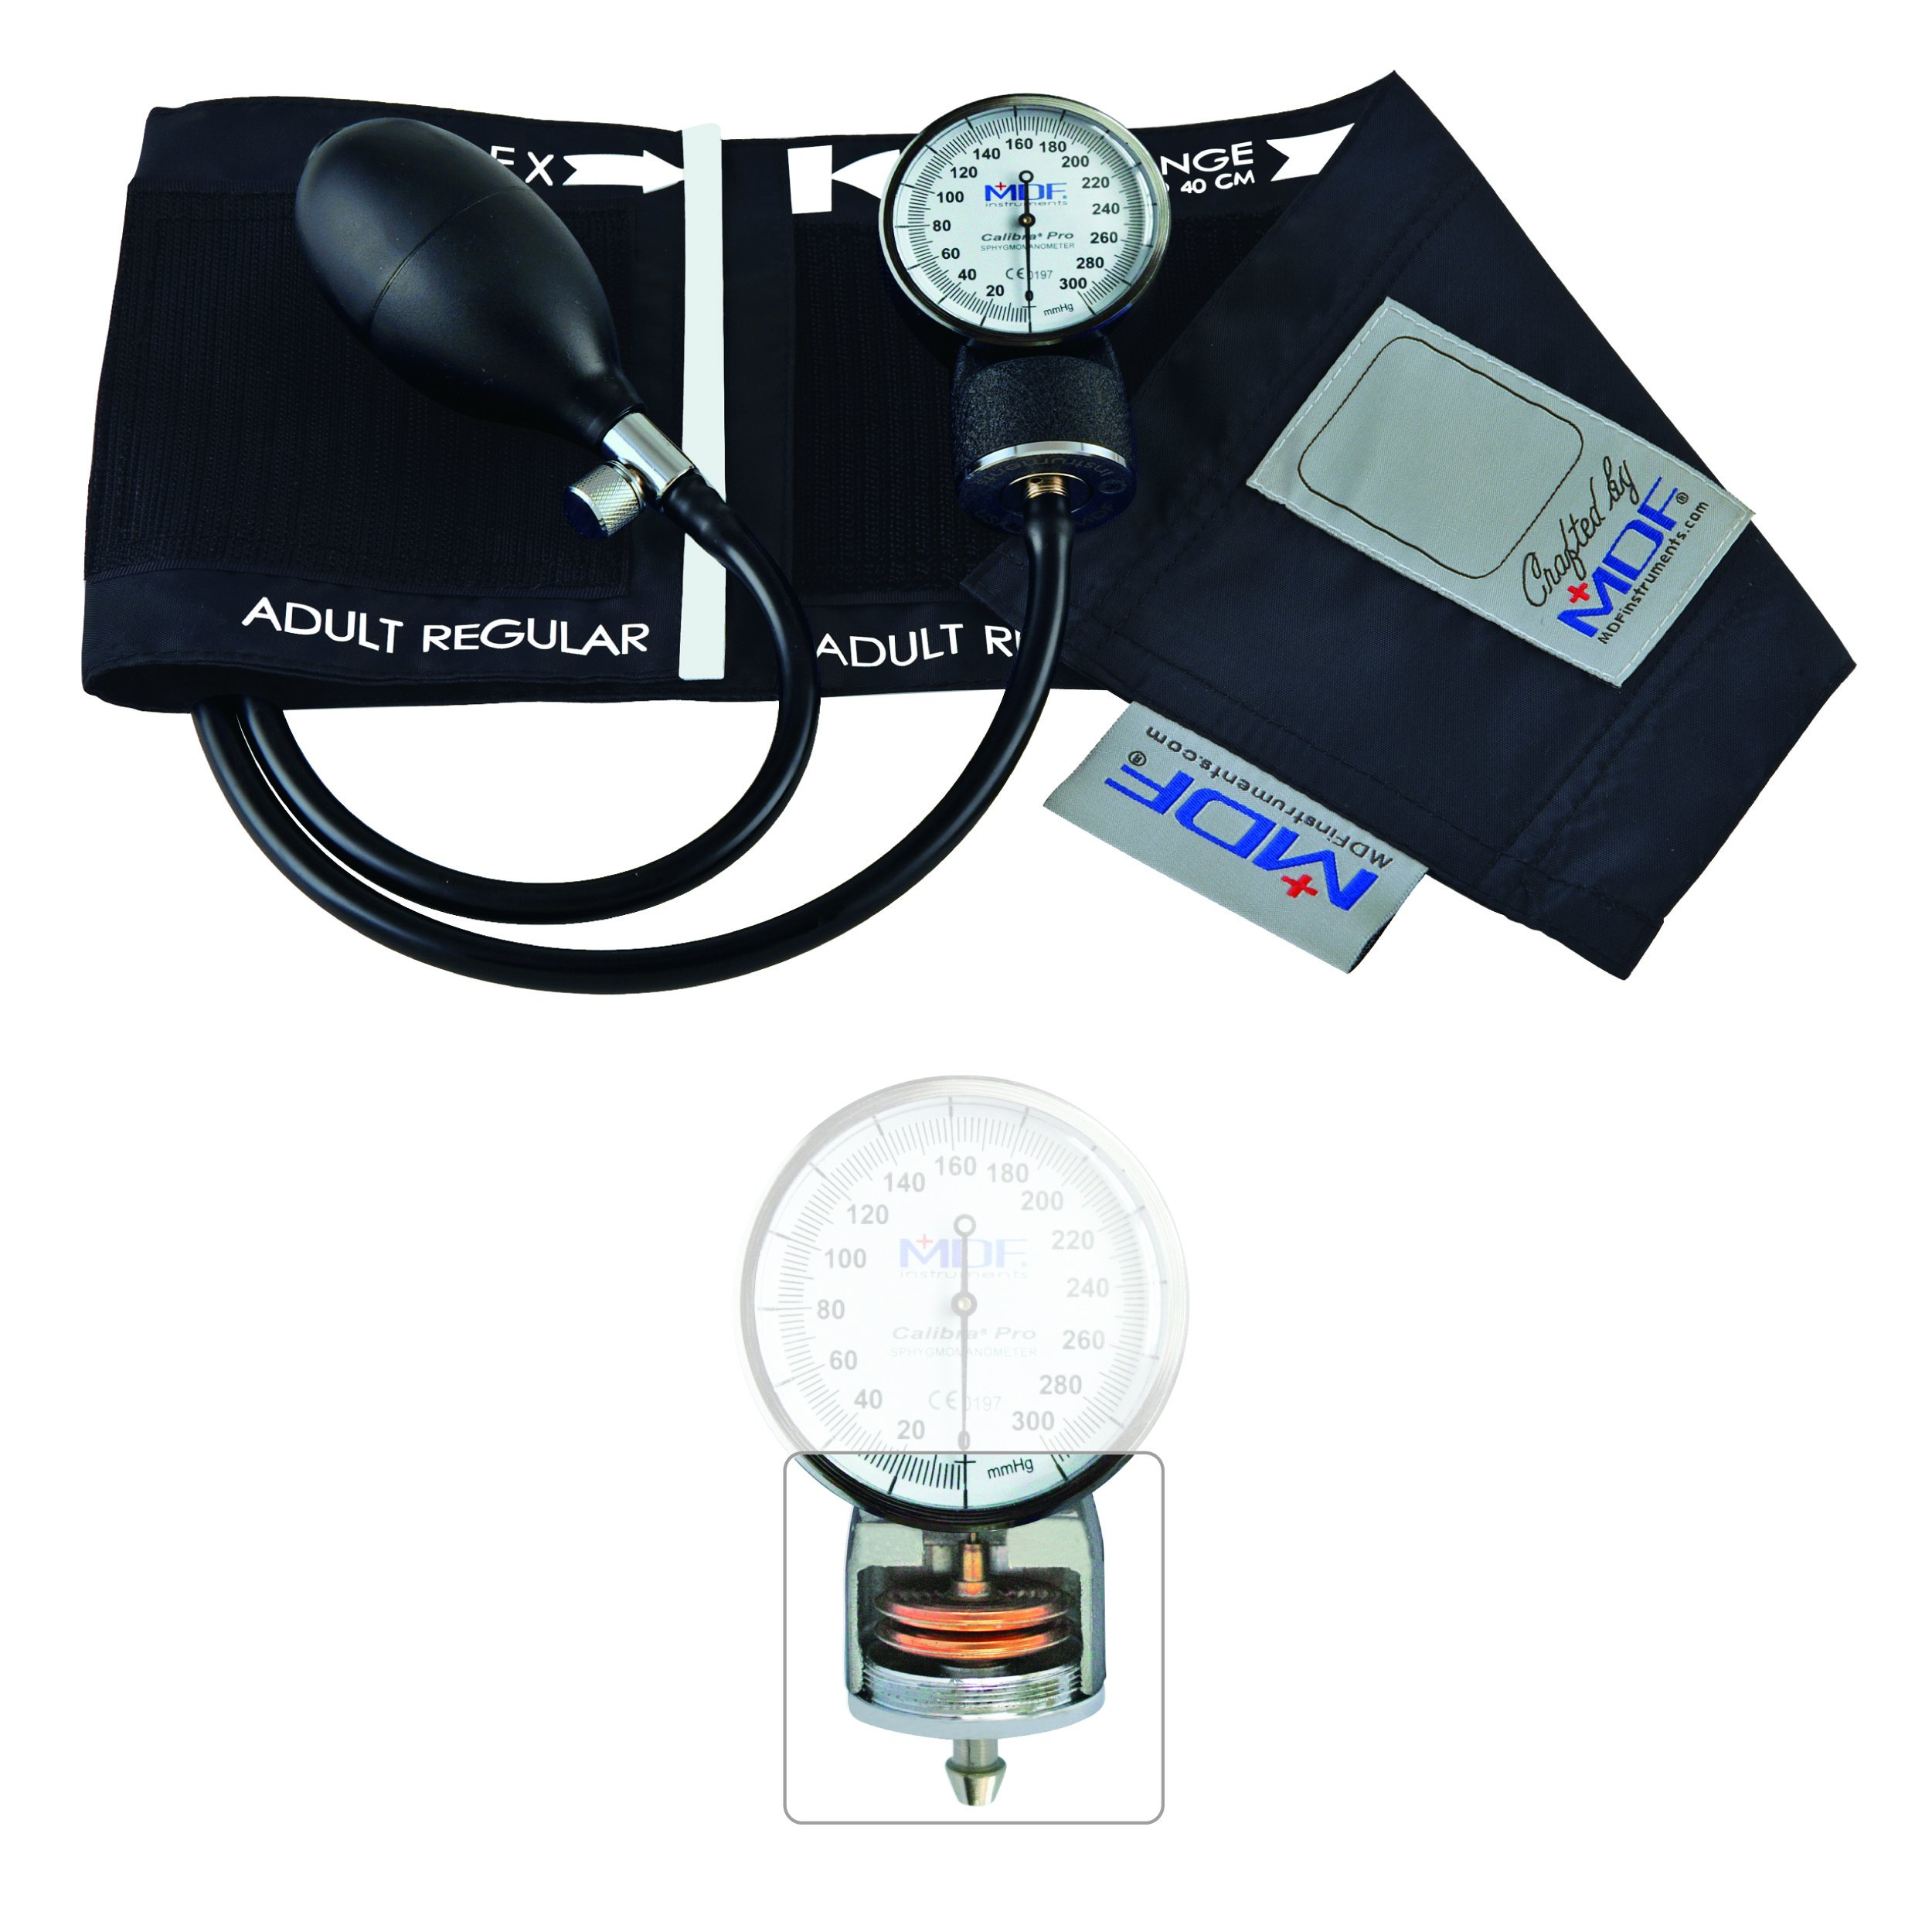 MDF Calibra Pro Aneroid Sphygmomanometer - Professional Blood Pressure Monitor with Adult Sized Cuff Included - Full & Free-Parts-For-Life - Black (MDF808B-11)